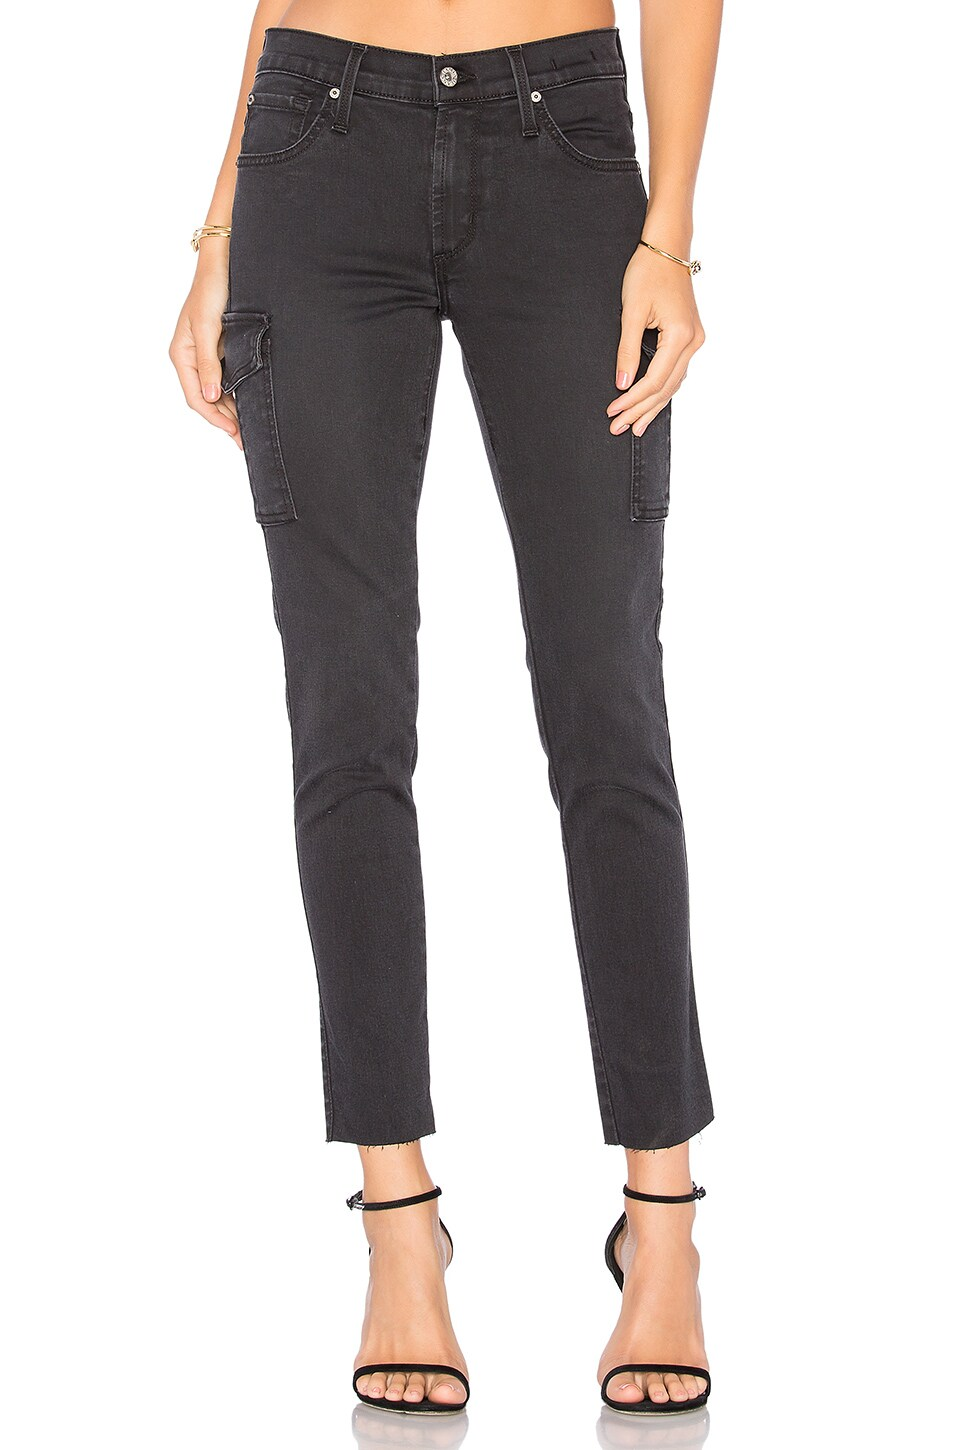 James Jeans Blacked Out Twiggy Ankle Cargo